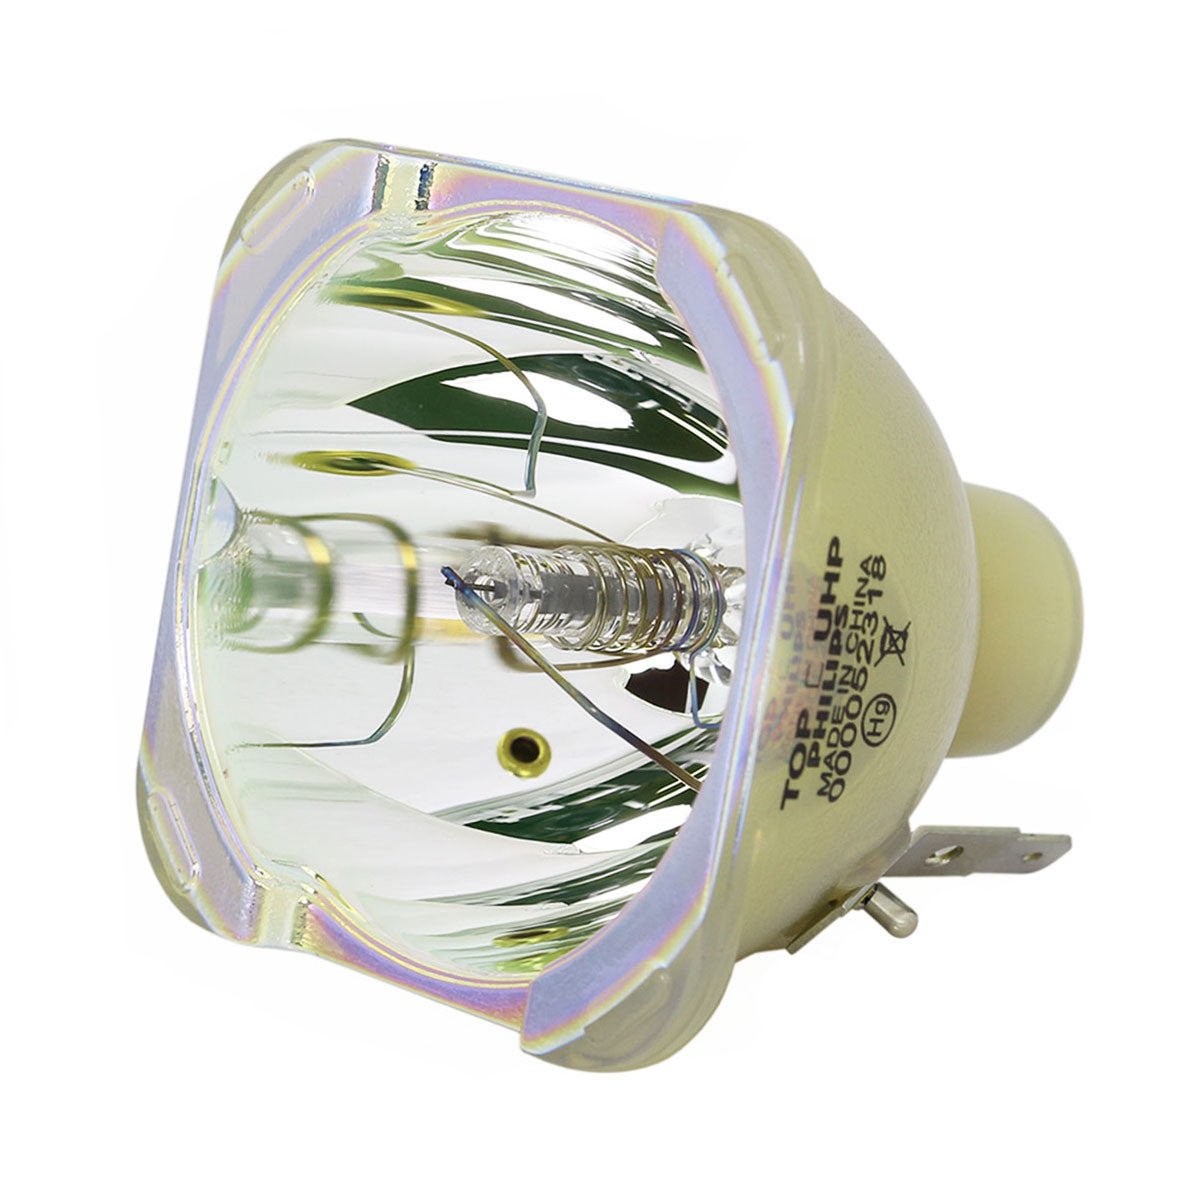 Philips 9284 453 05390 Philips Projector Bare Lamp